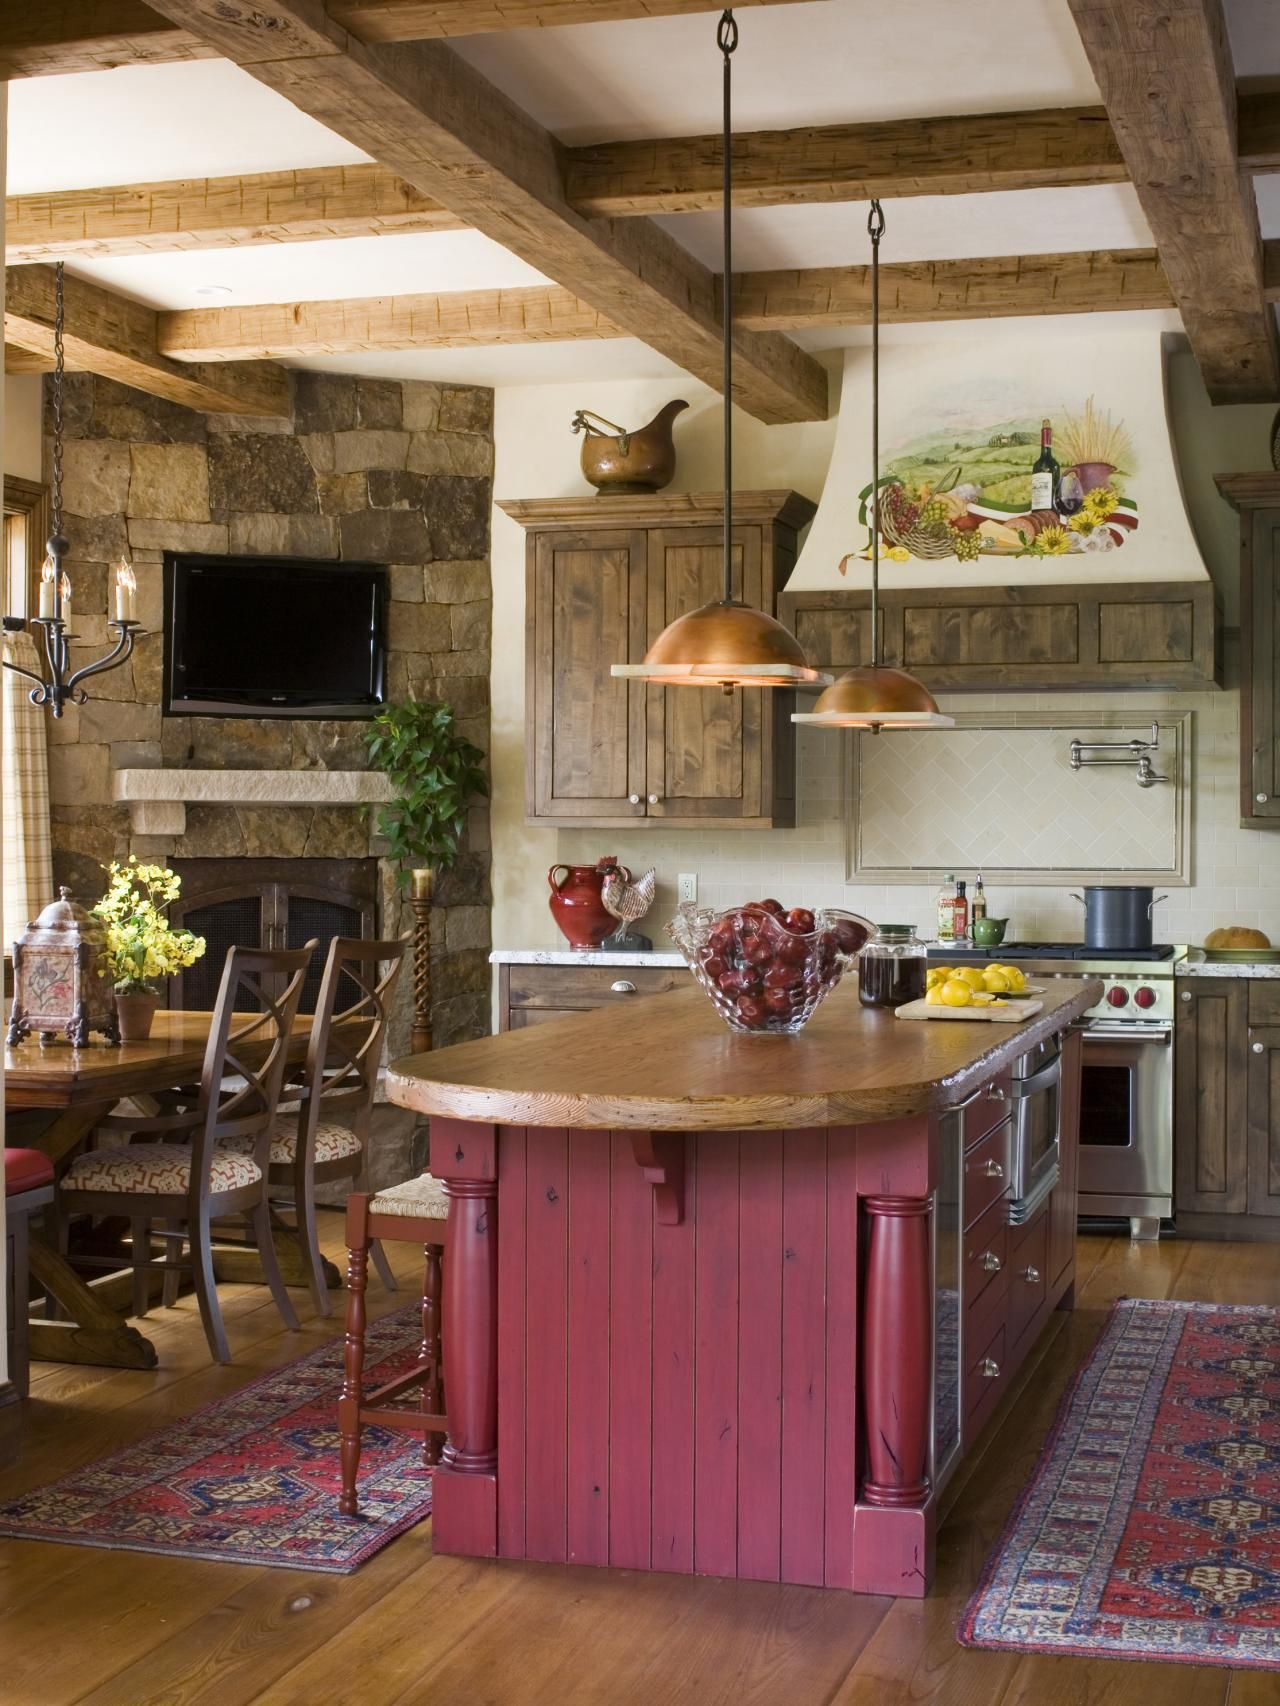 An earthy red paired with wood tones can warm a room. This red island with beadboard design is the perfect element for a charming country kitchen. A rustic range and exposed wooden beams add depth to the architectural scheme.